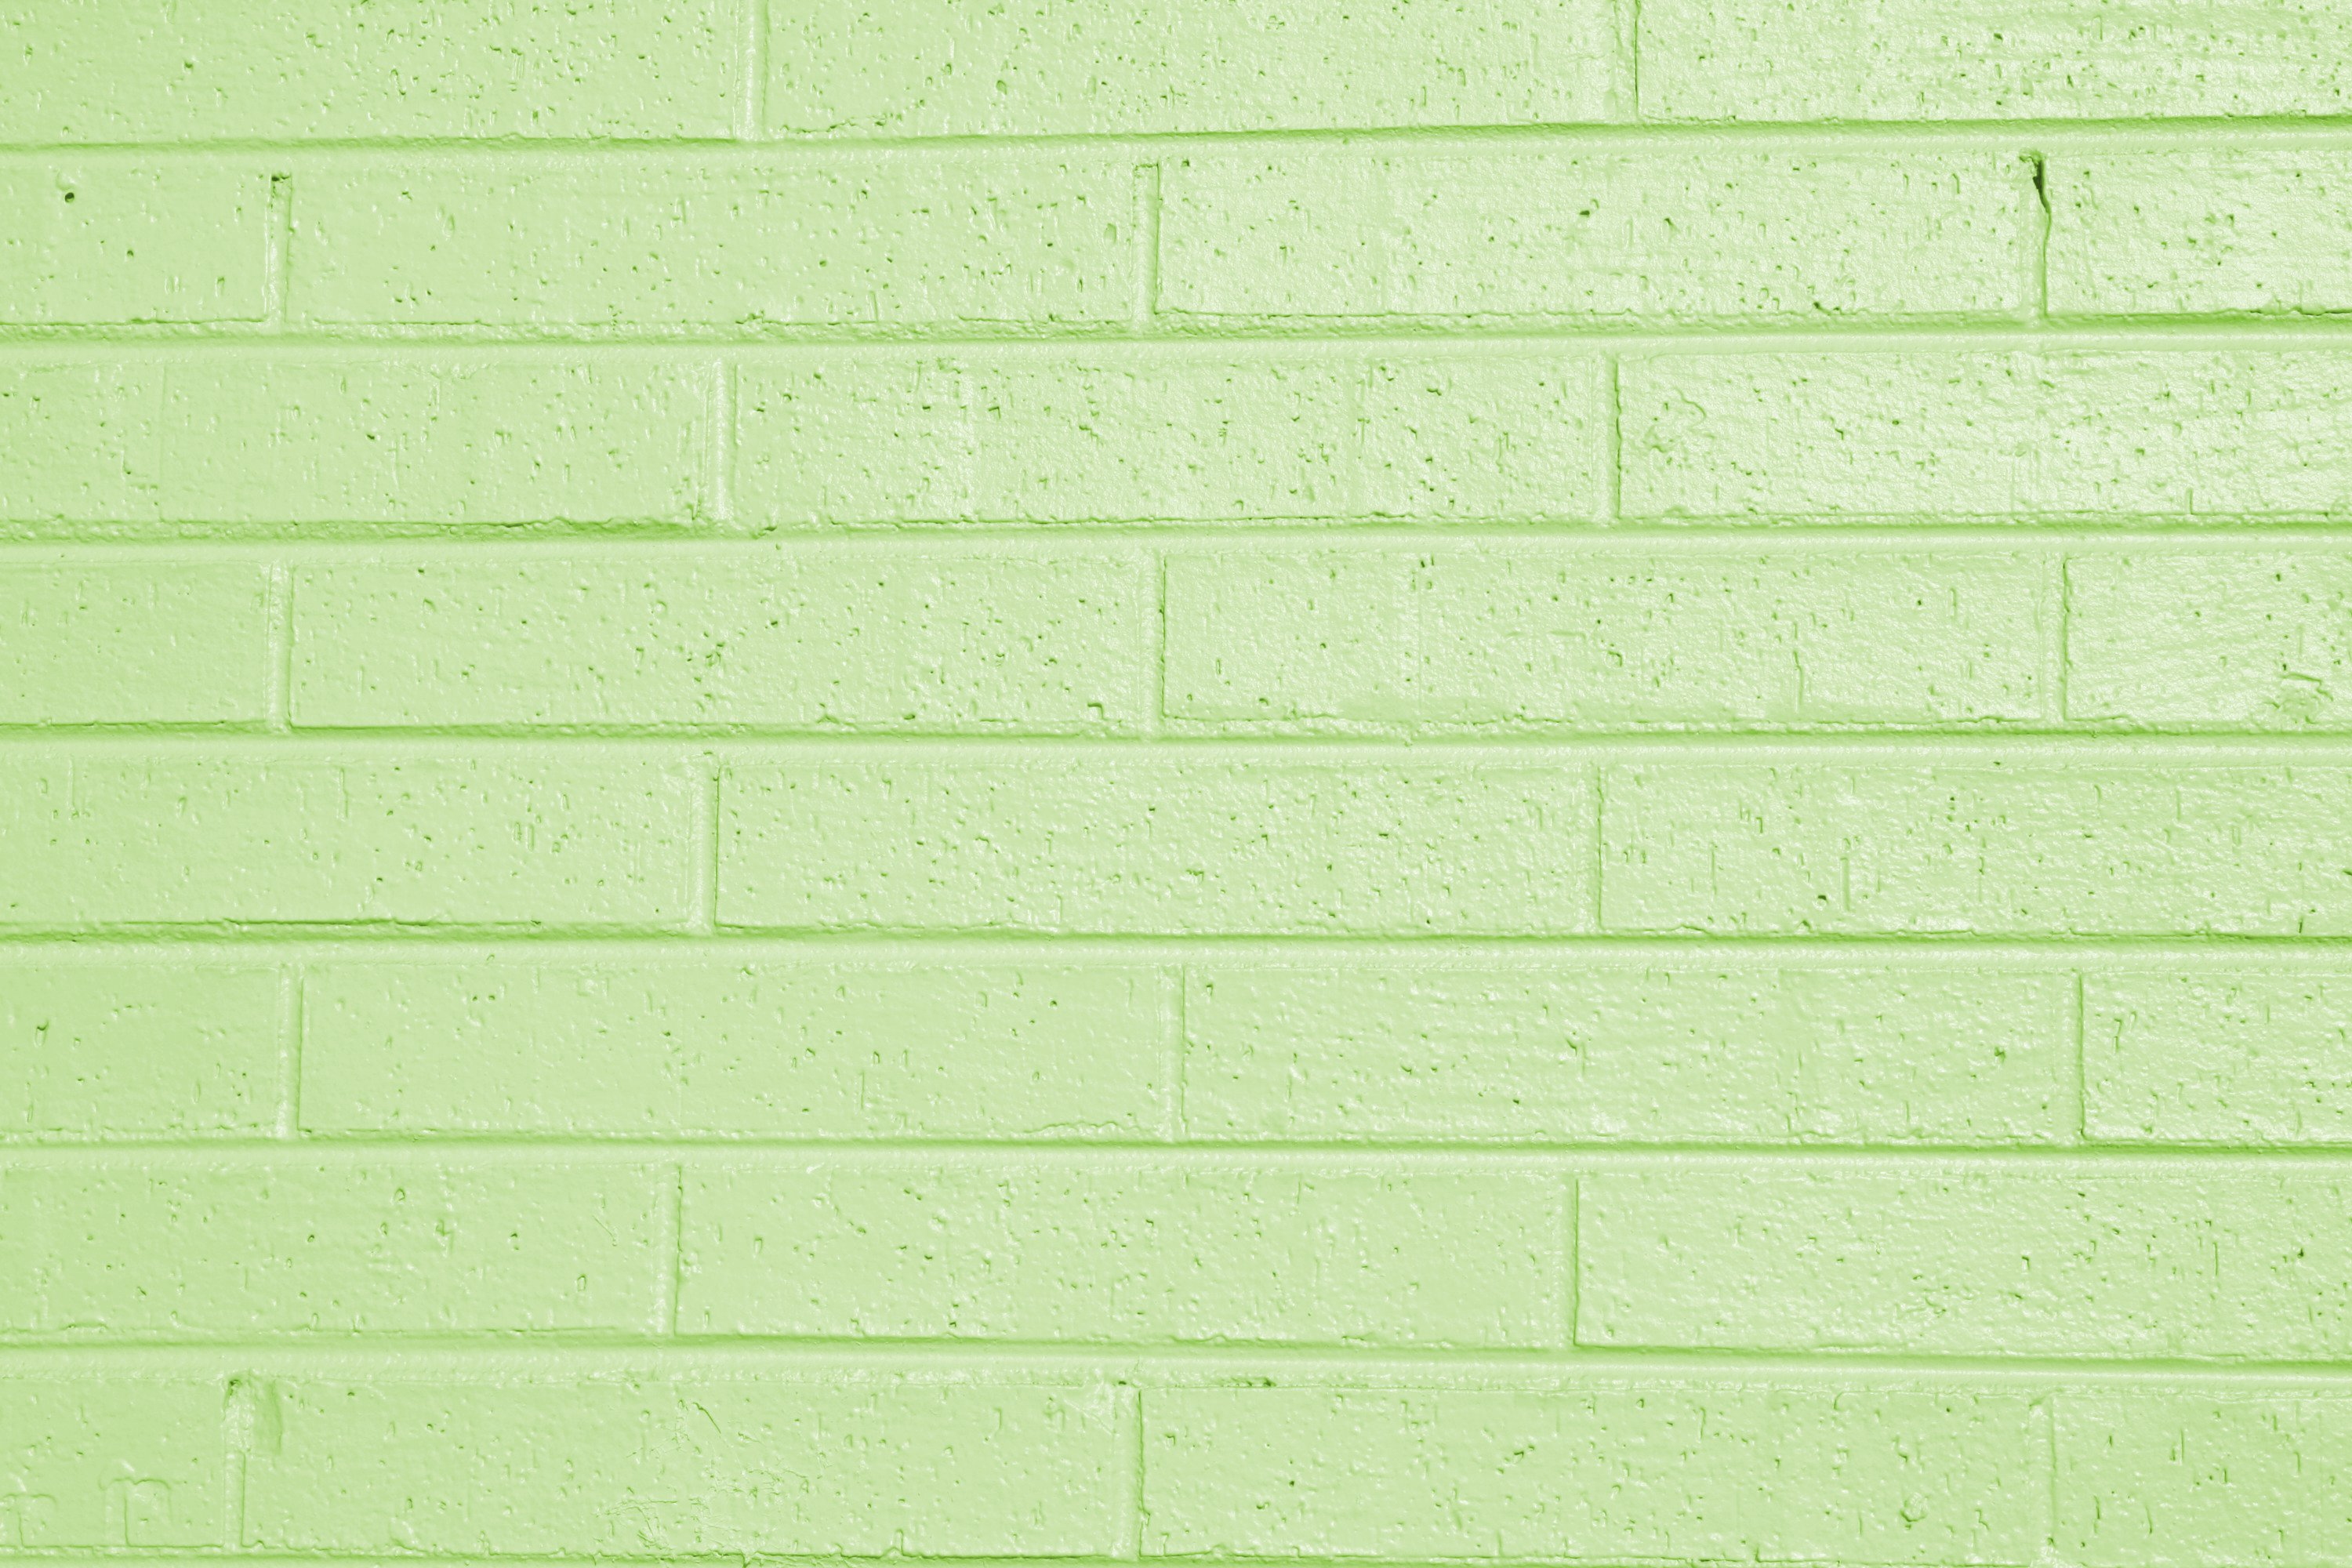 Wall Paint Light Green : Lime Green Painted Brick Wall Texture Picture Free Photograph Photos Public Domain